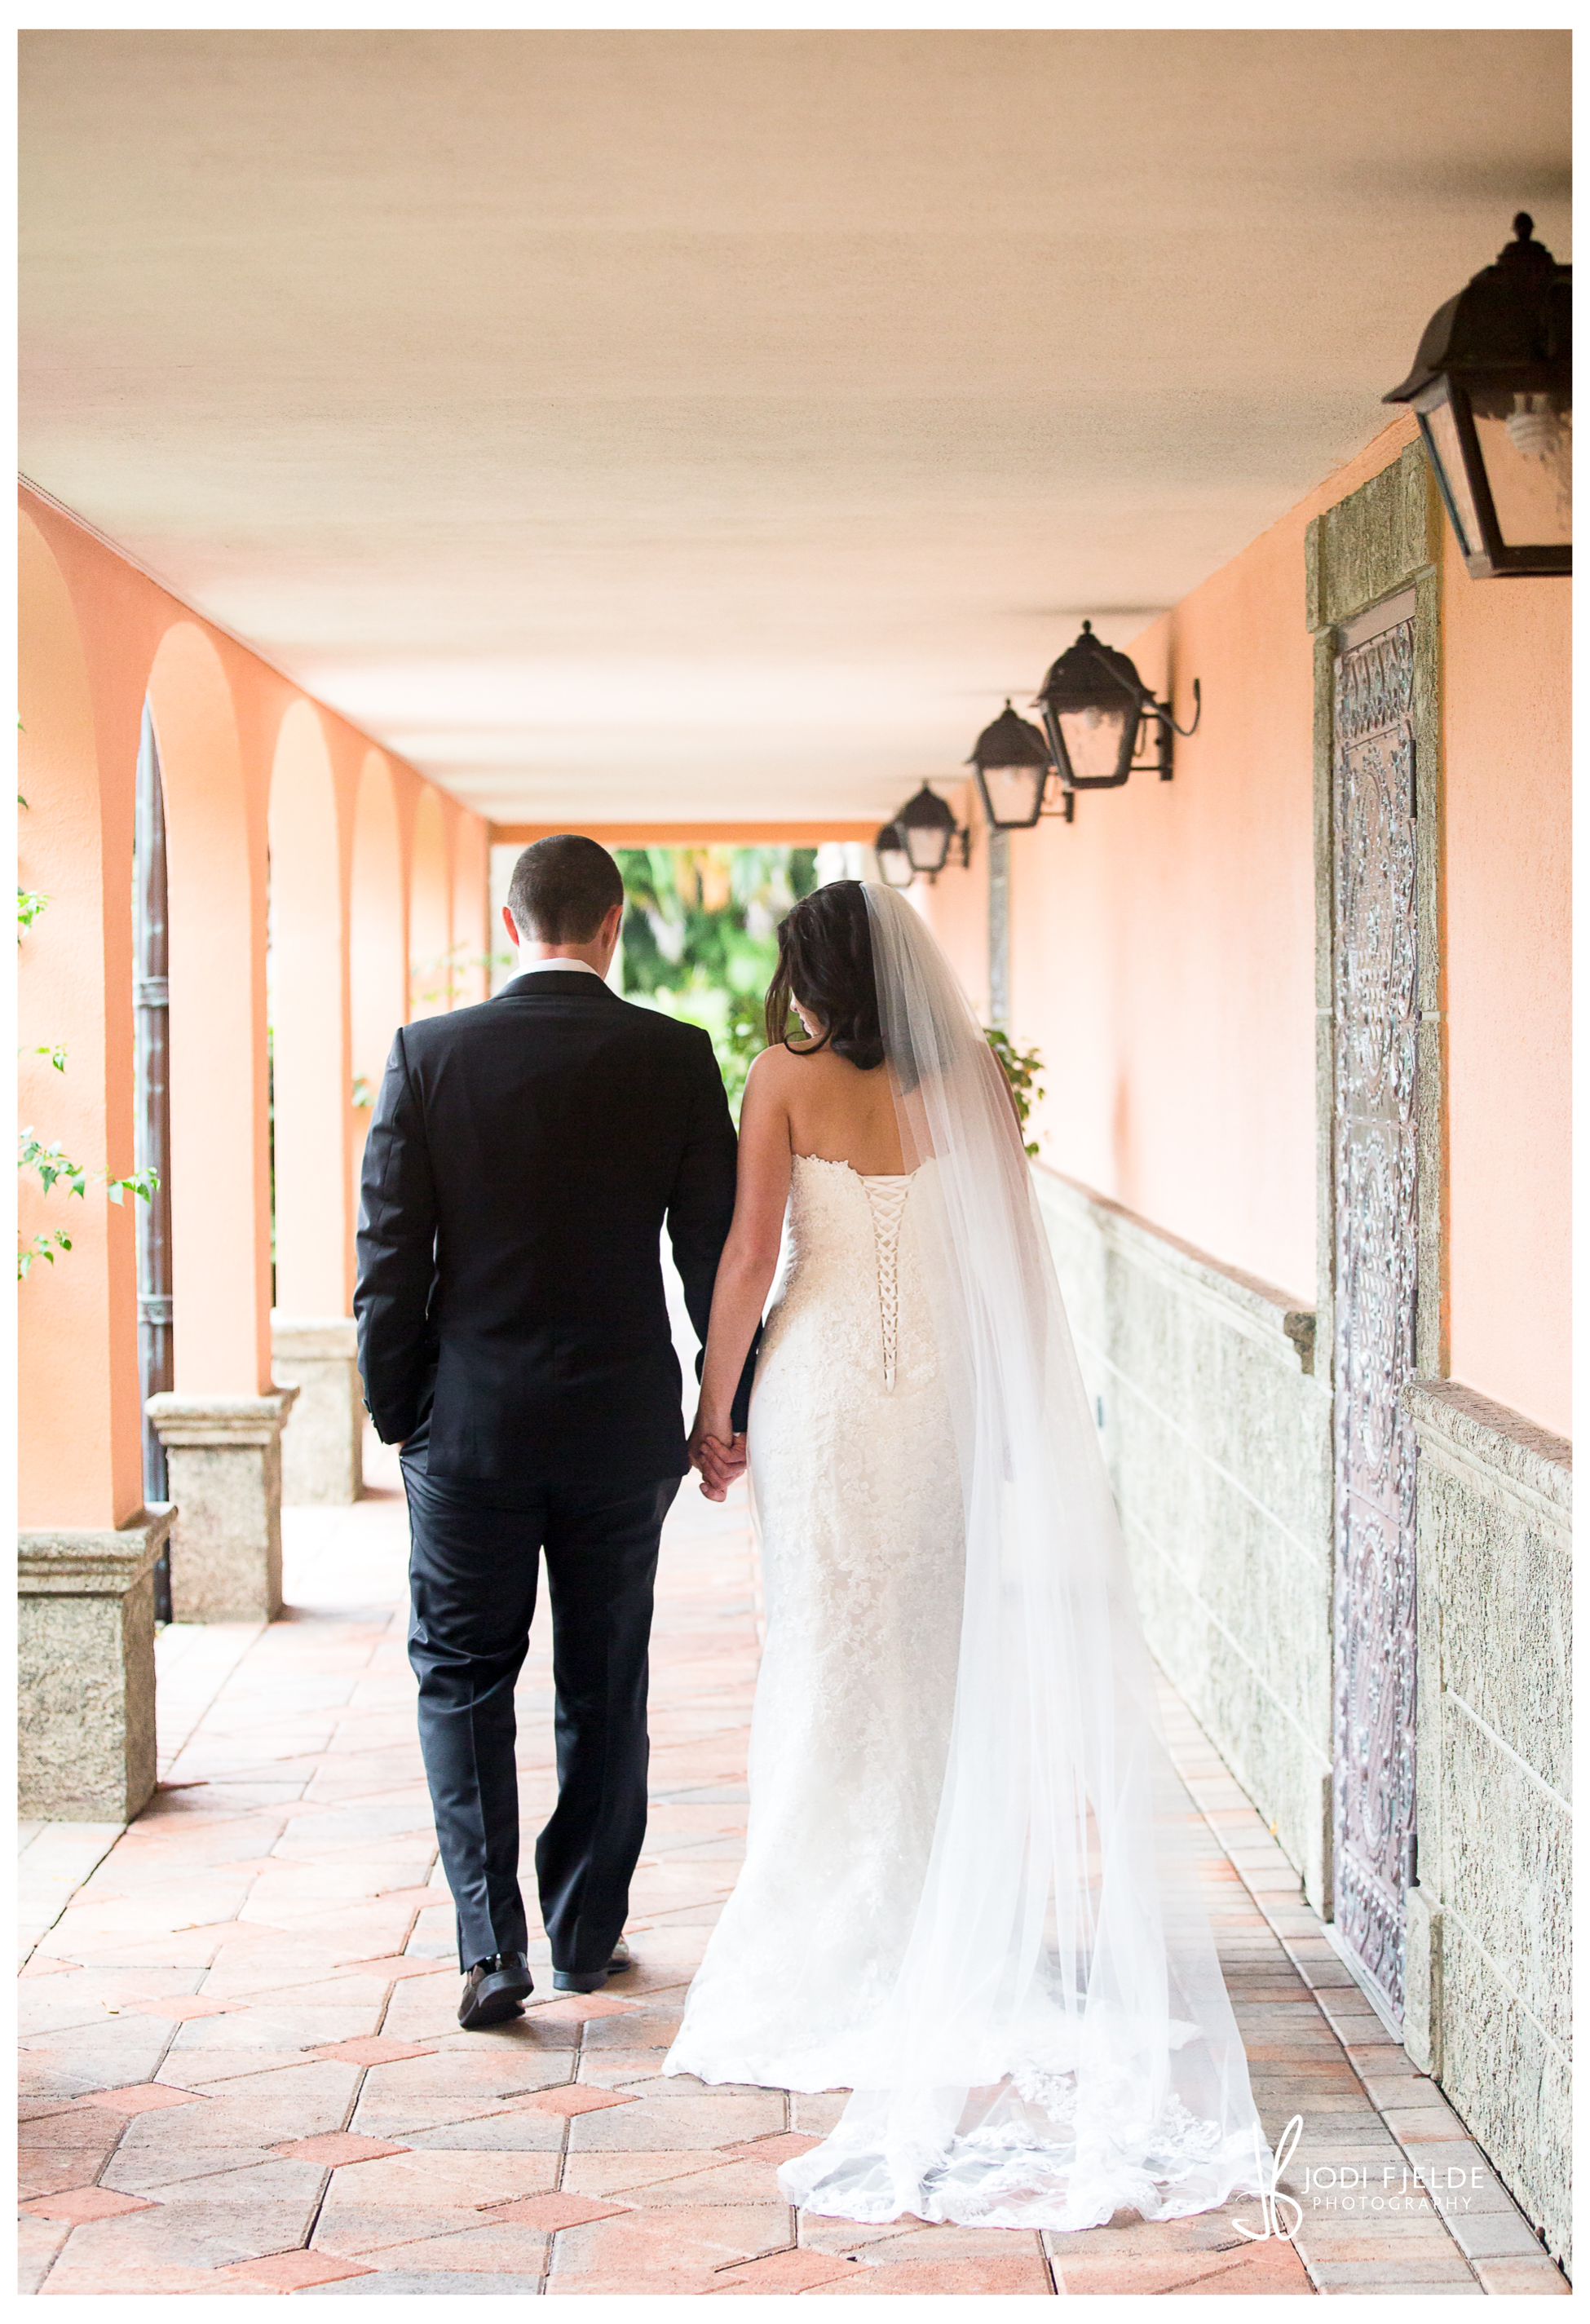 Fort-Lauderdale-Signature-grand-wedding-Paola-and-Max-married-15.jpg